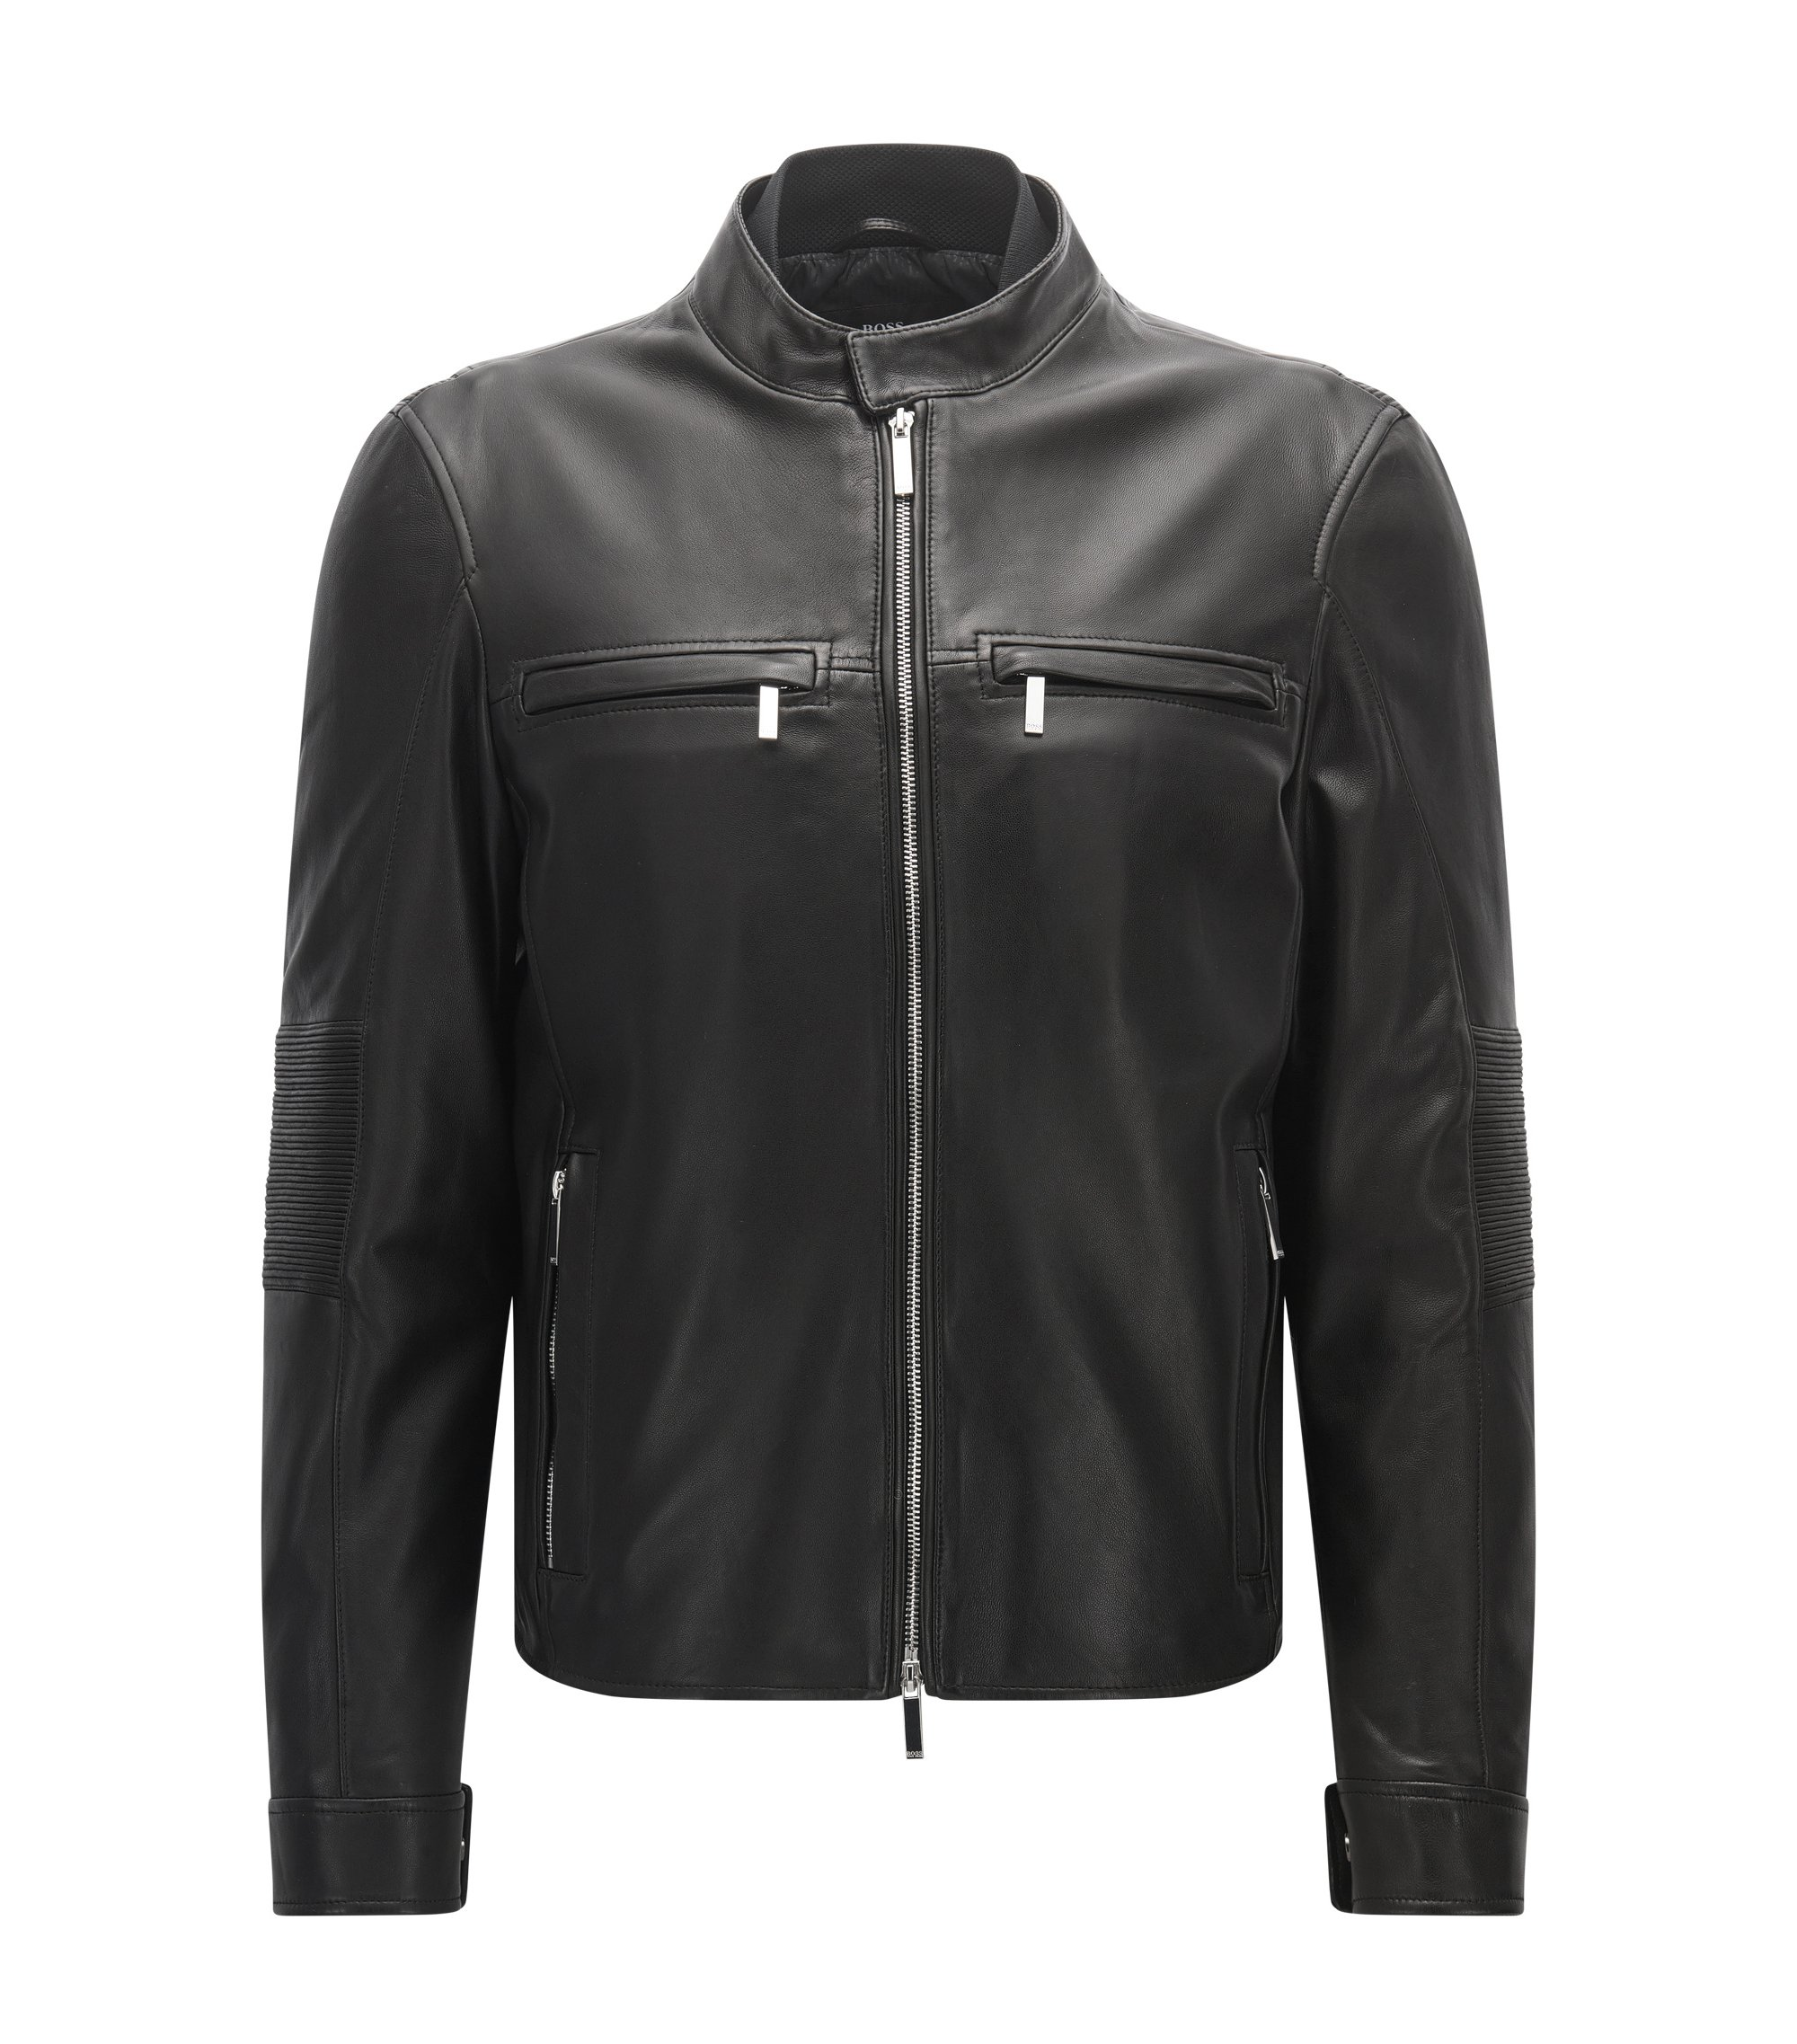 Blouson de motard Slim Fit de la collection Mercedes-Benz, en cuir nappa, Noir